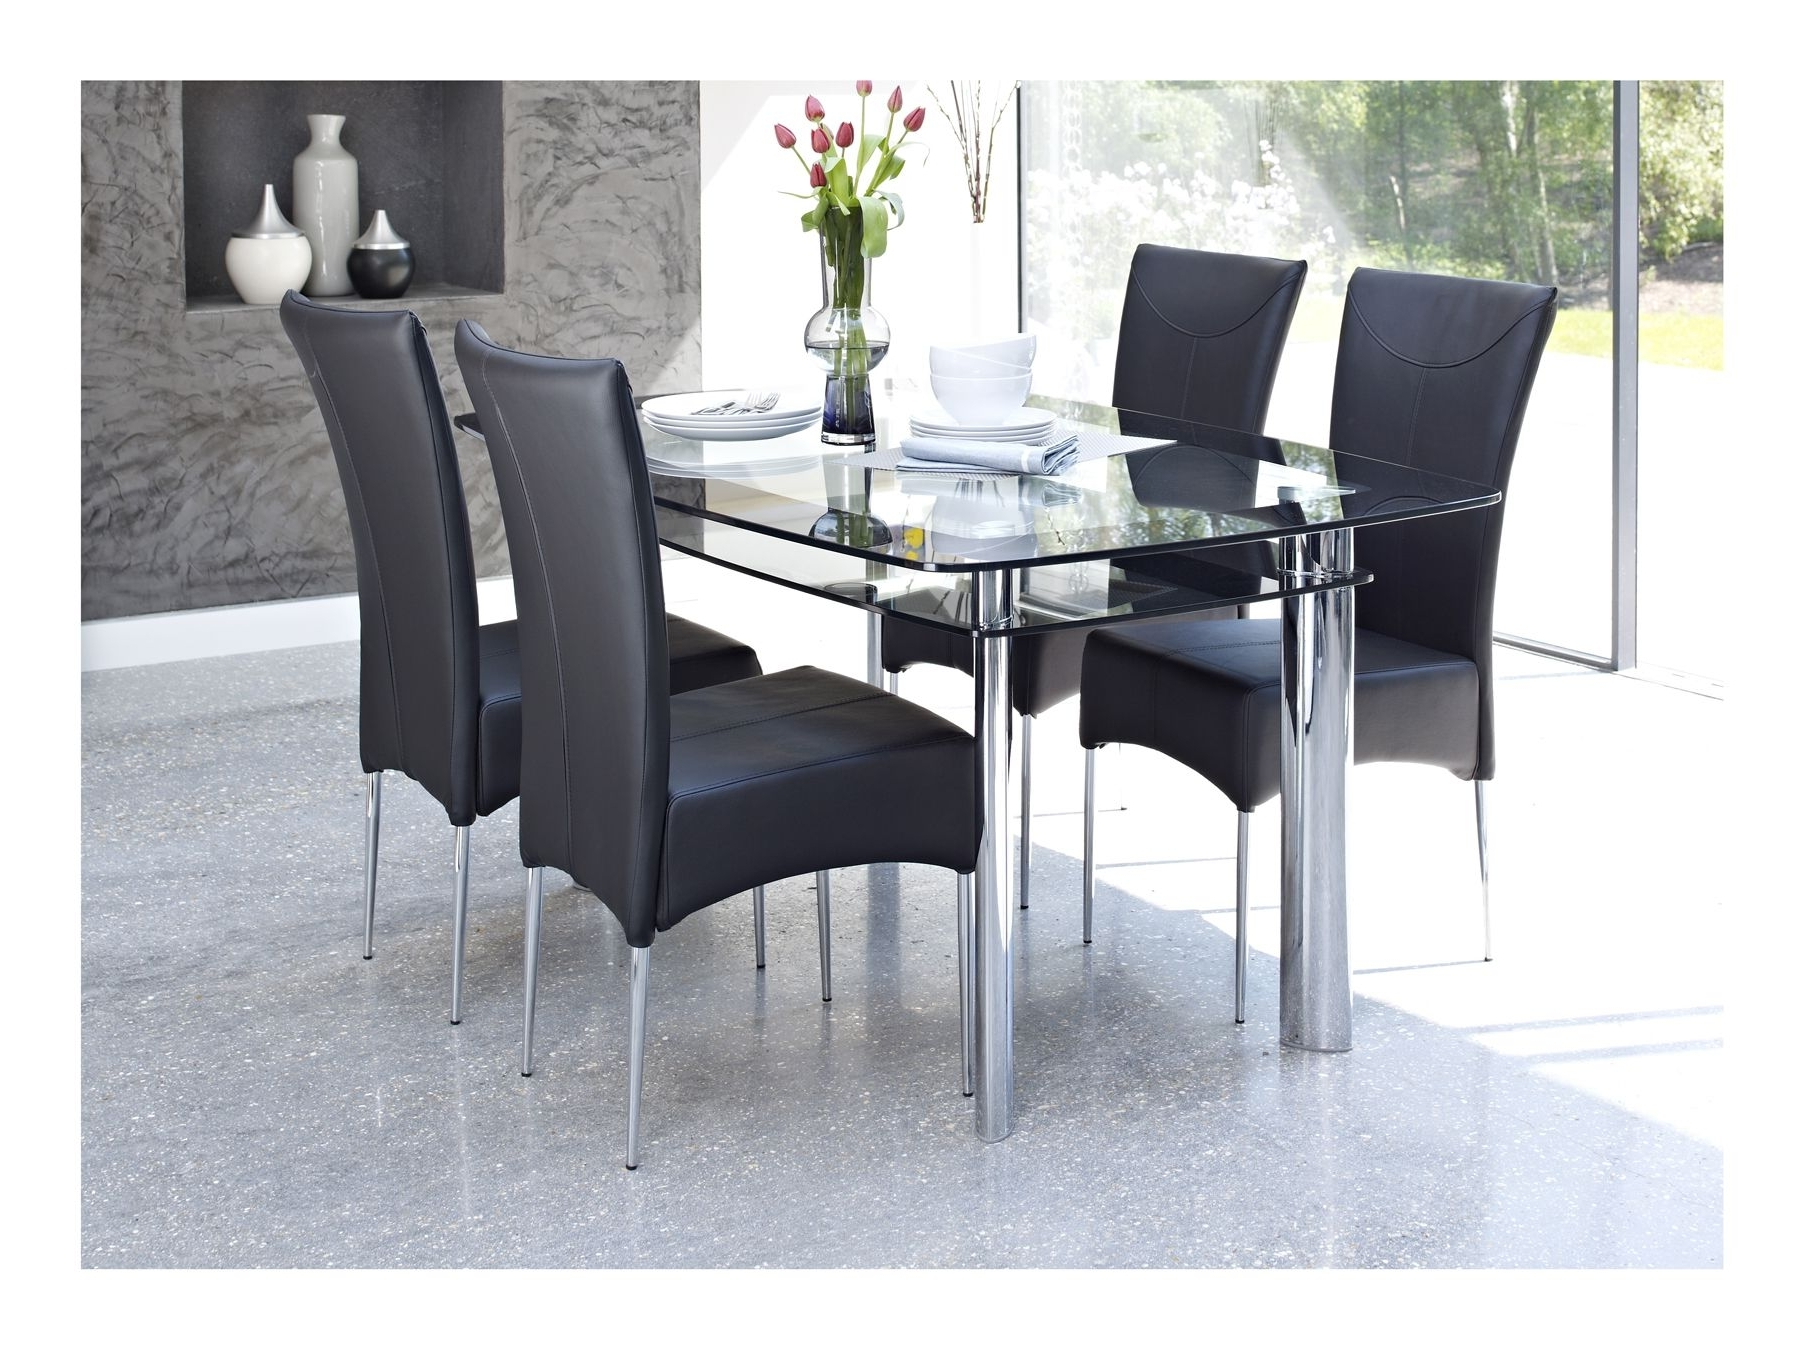 Black Glass Dining Tables And 4 Chairs In Most Recent Delightful Kitchen Black Glass Dining Table And 4 Chairs Room Ideas (Gallery 2 of 25)